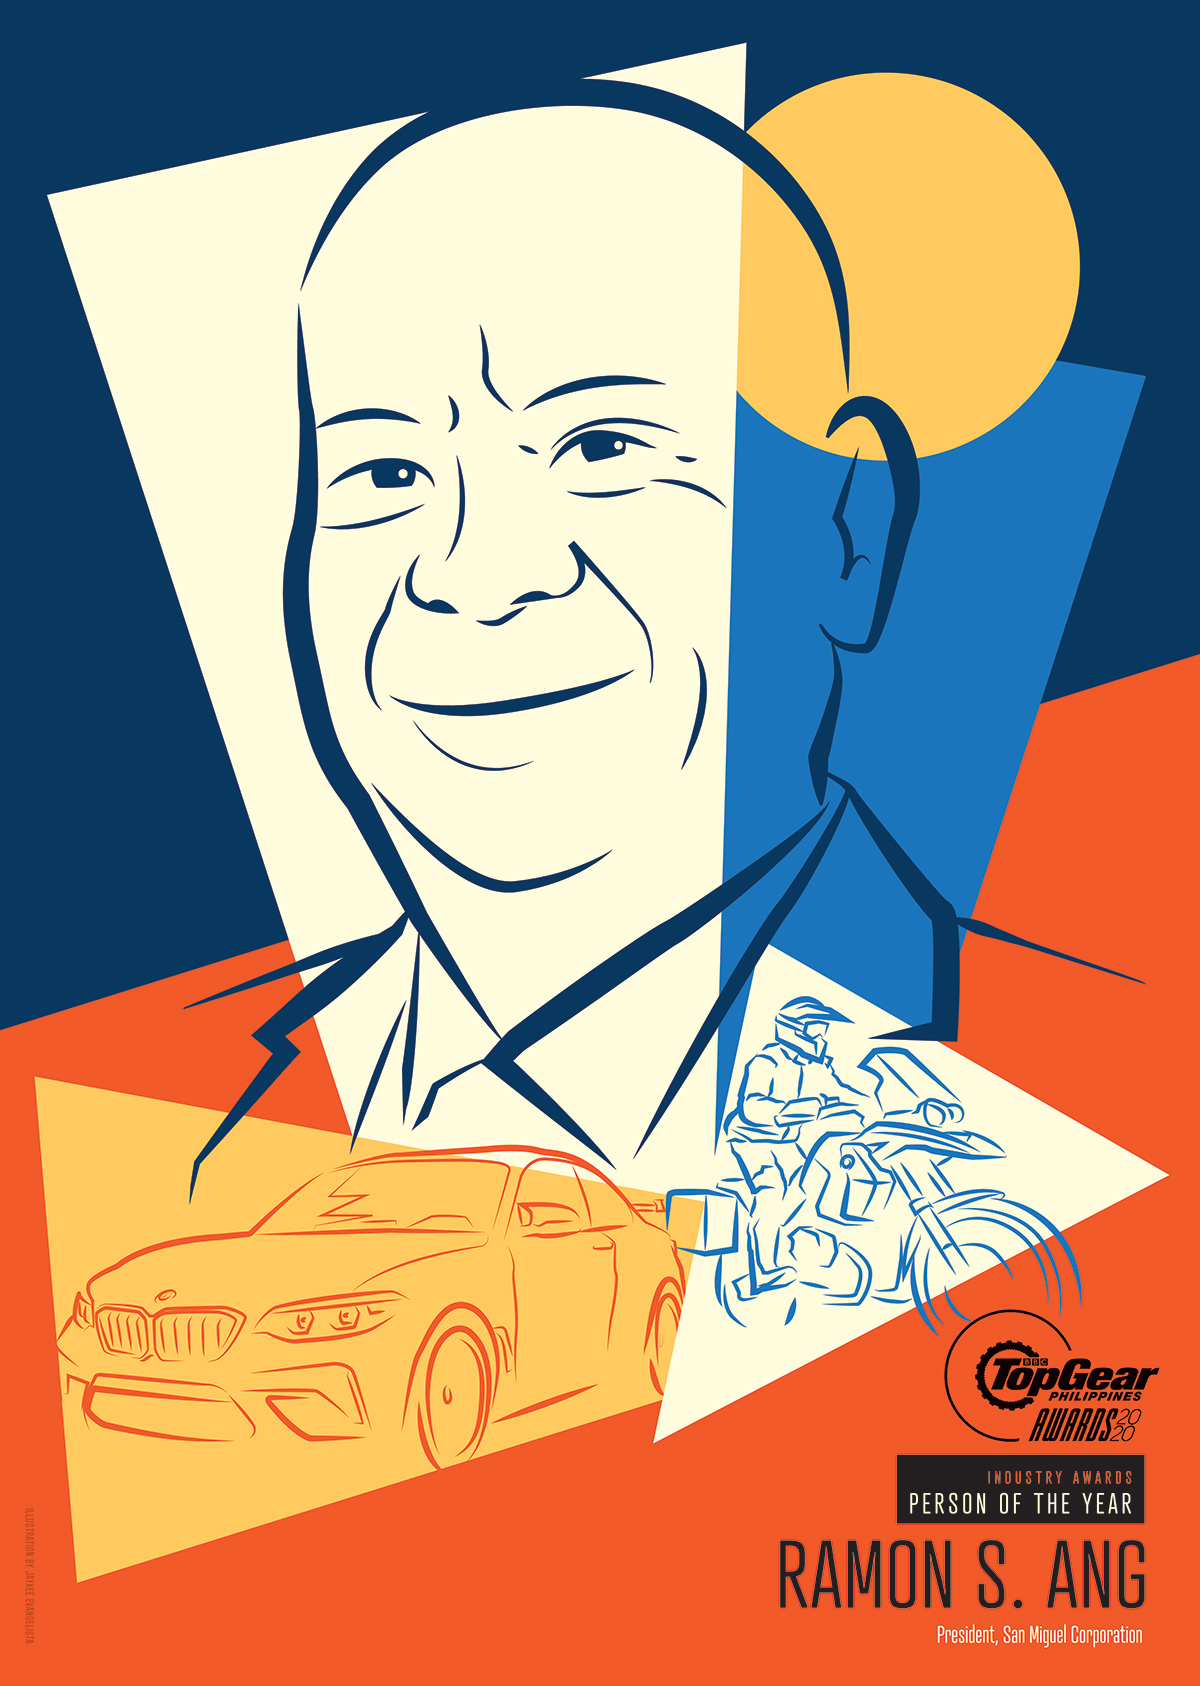 Top Gear Philippines' Person of the Year – Ramon Ang